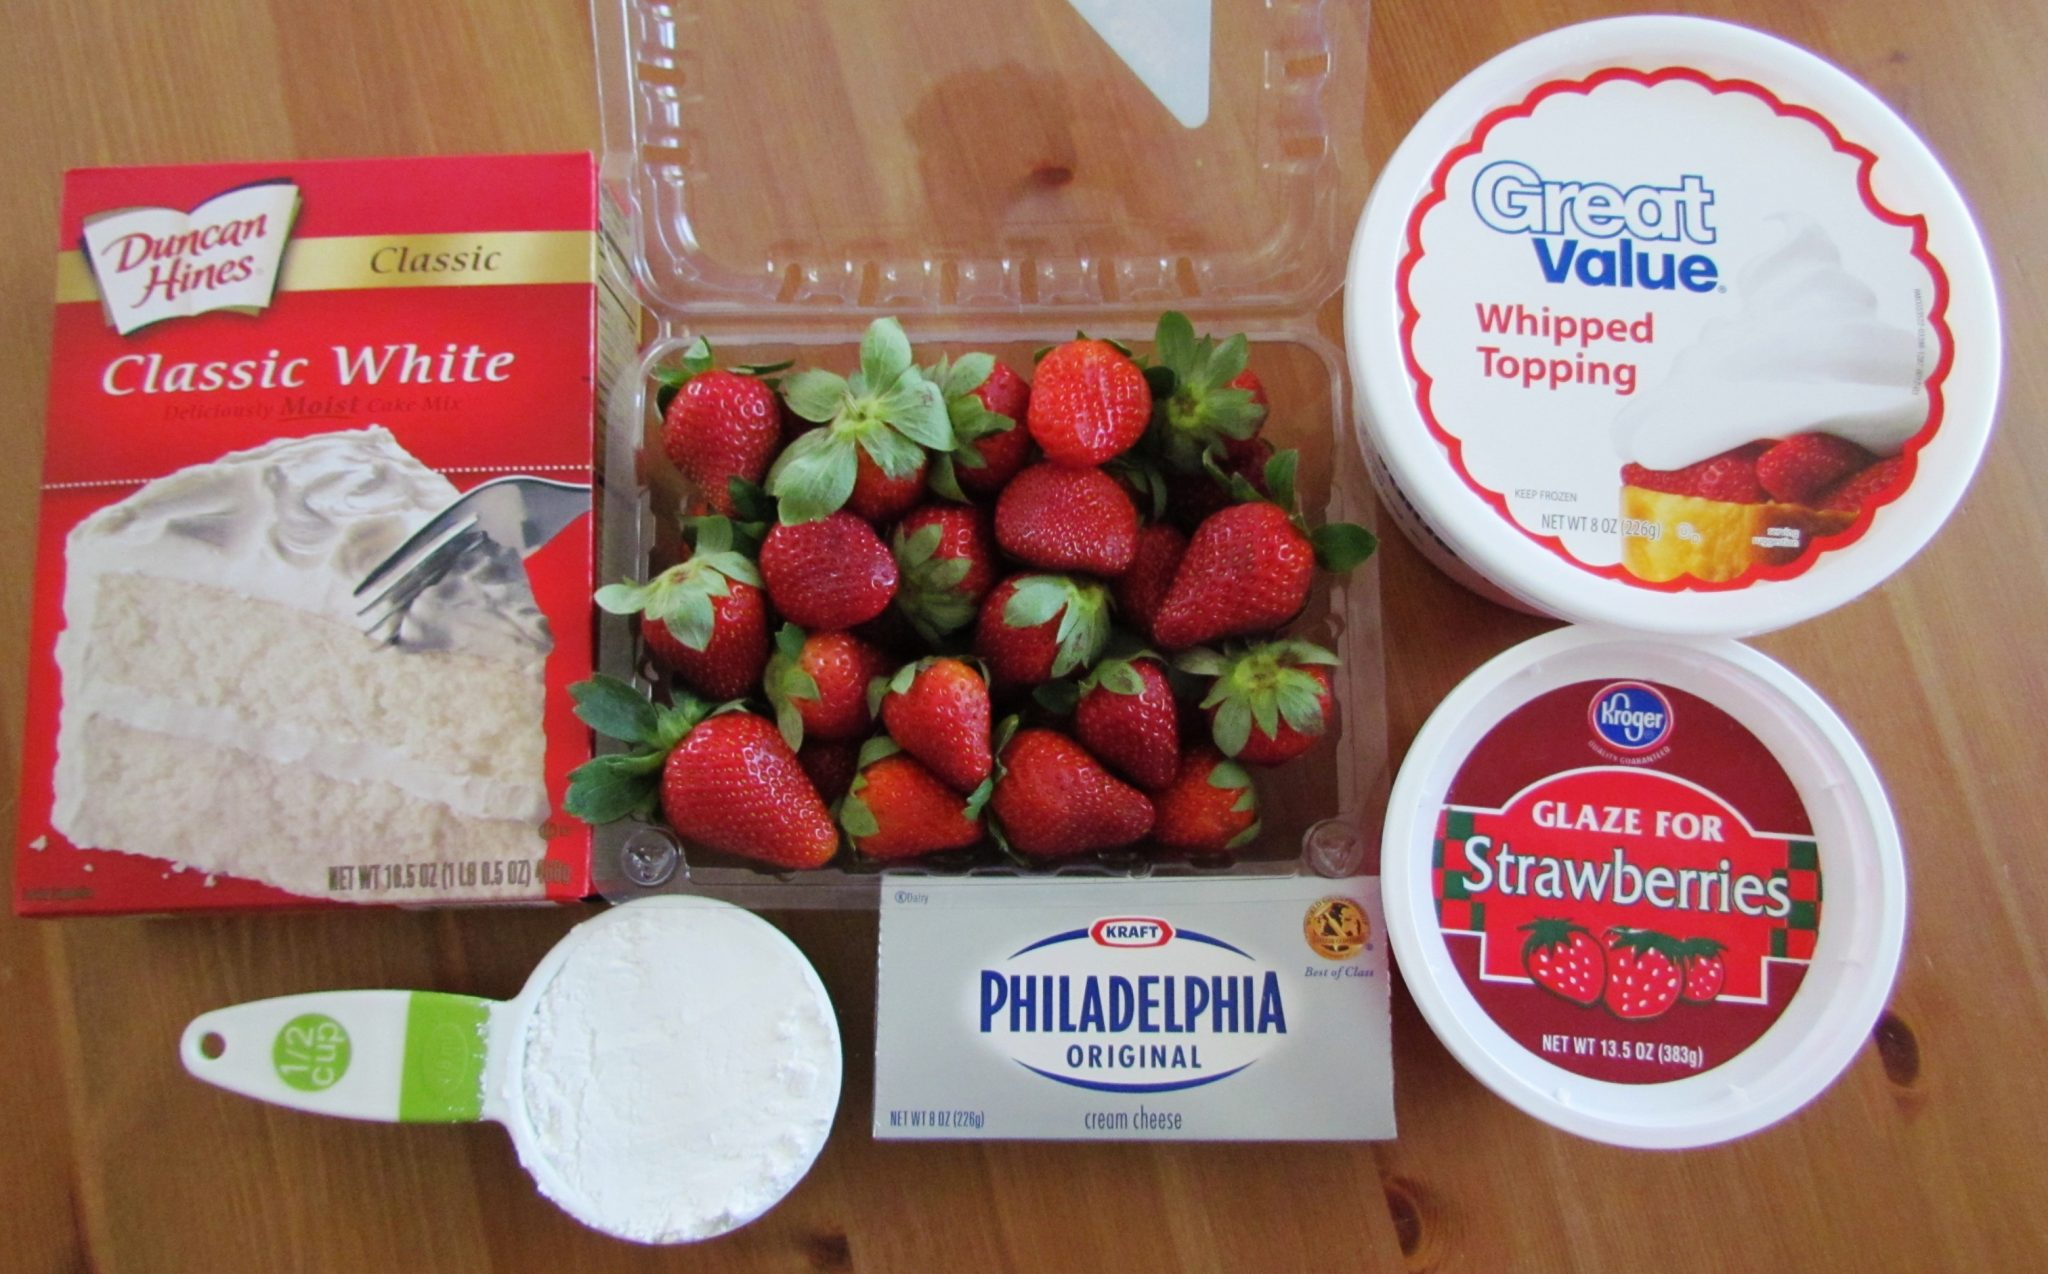 9 Photos of Superior Grocers Cakes Strawberry Shortcake